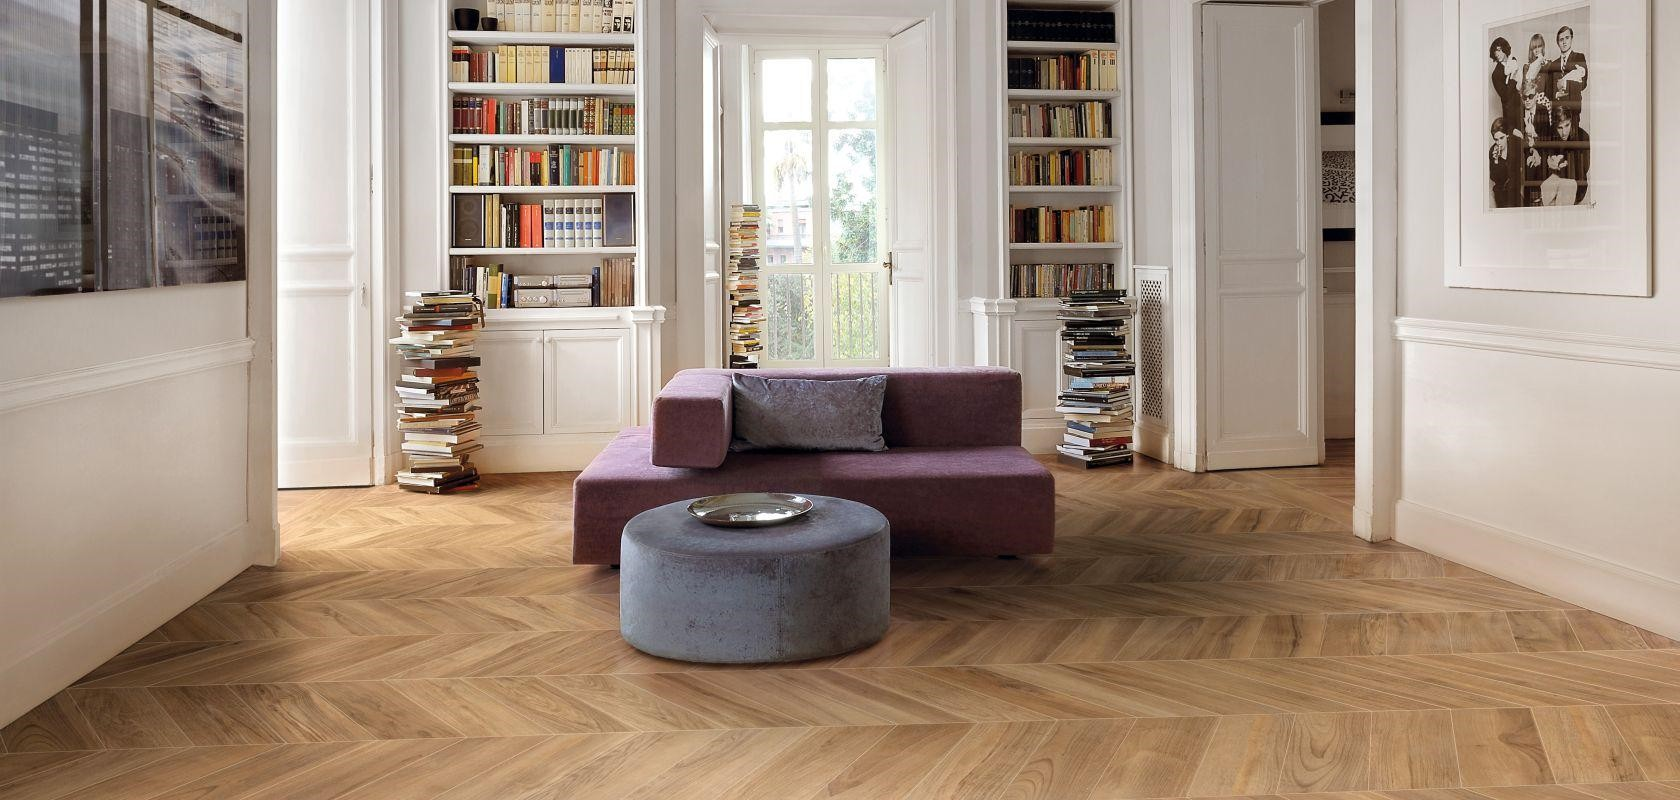 Pose Carrelage En Chevron Carrelage Imitation Parquet Neutre Private Room - Porto Venere